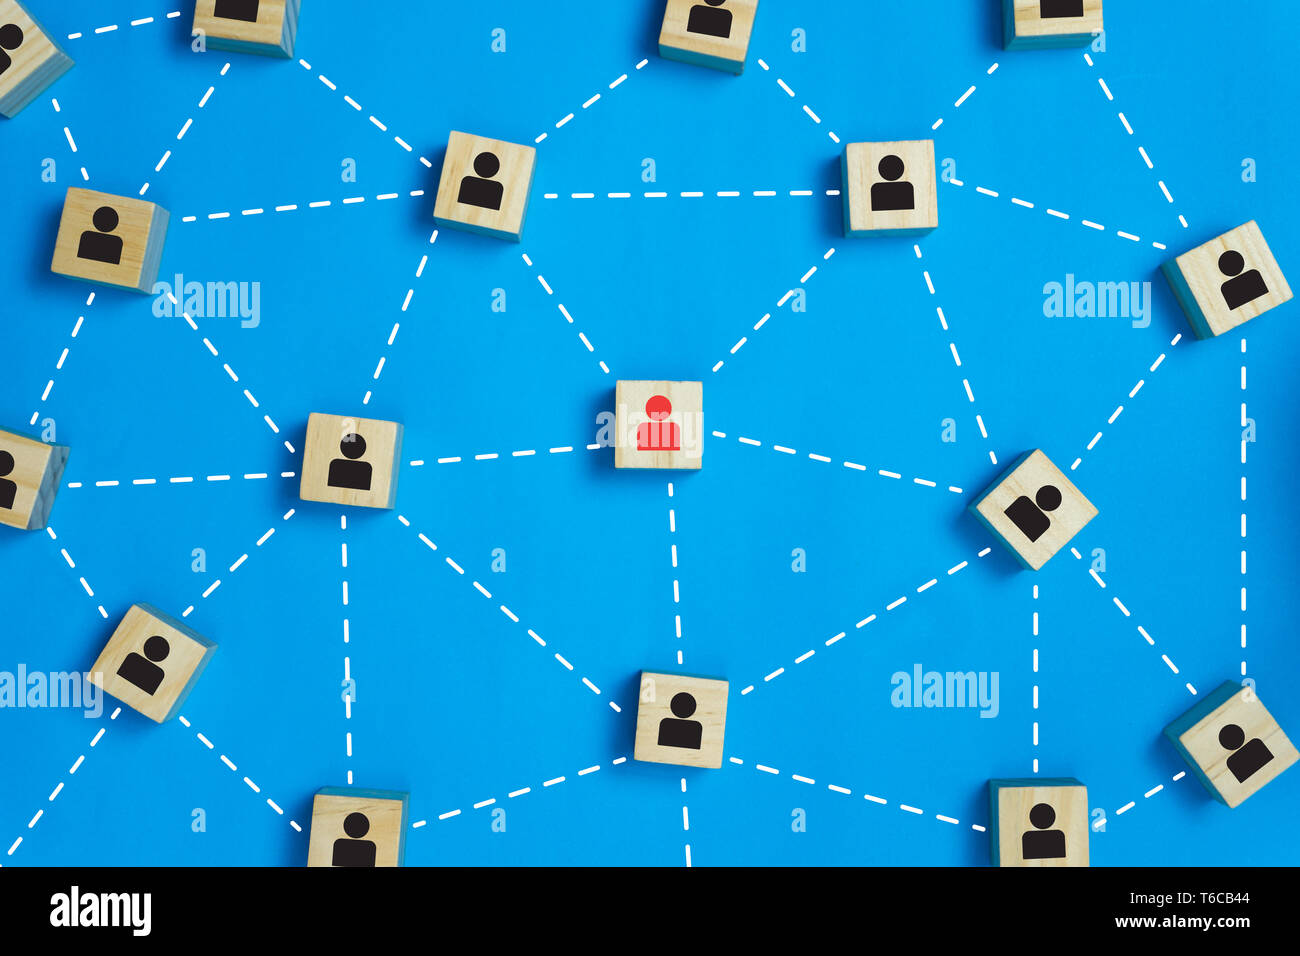 Leadership and network teamwork concepts Red businessman icon on the wooden block in the middle between the black business icon on the wooden blocks.  Stock Photo